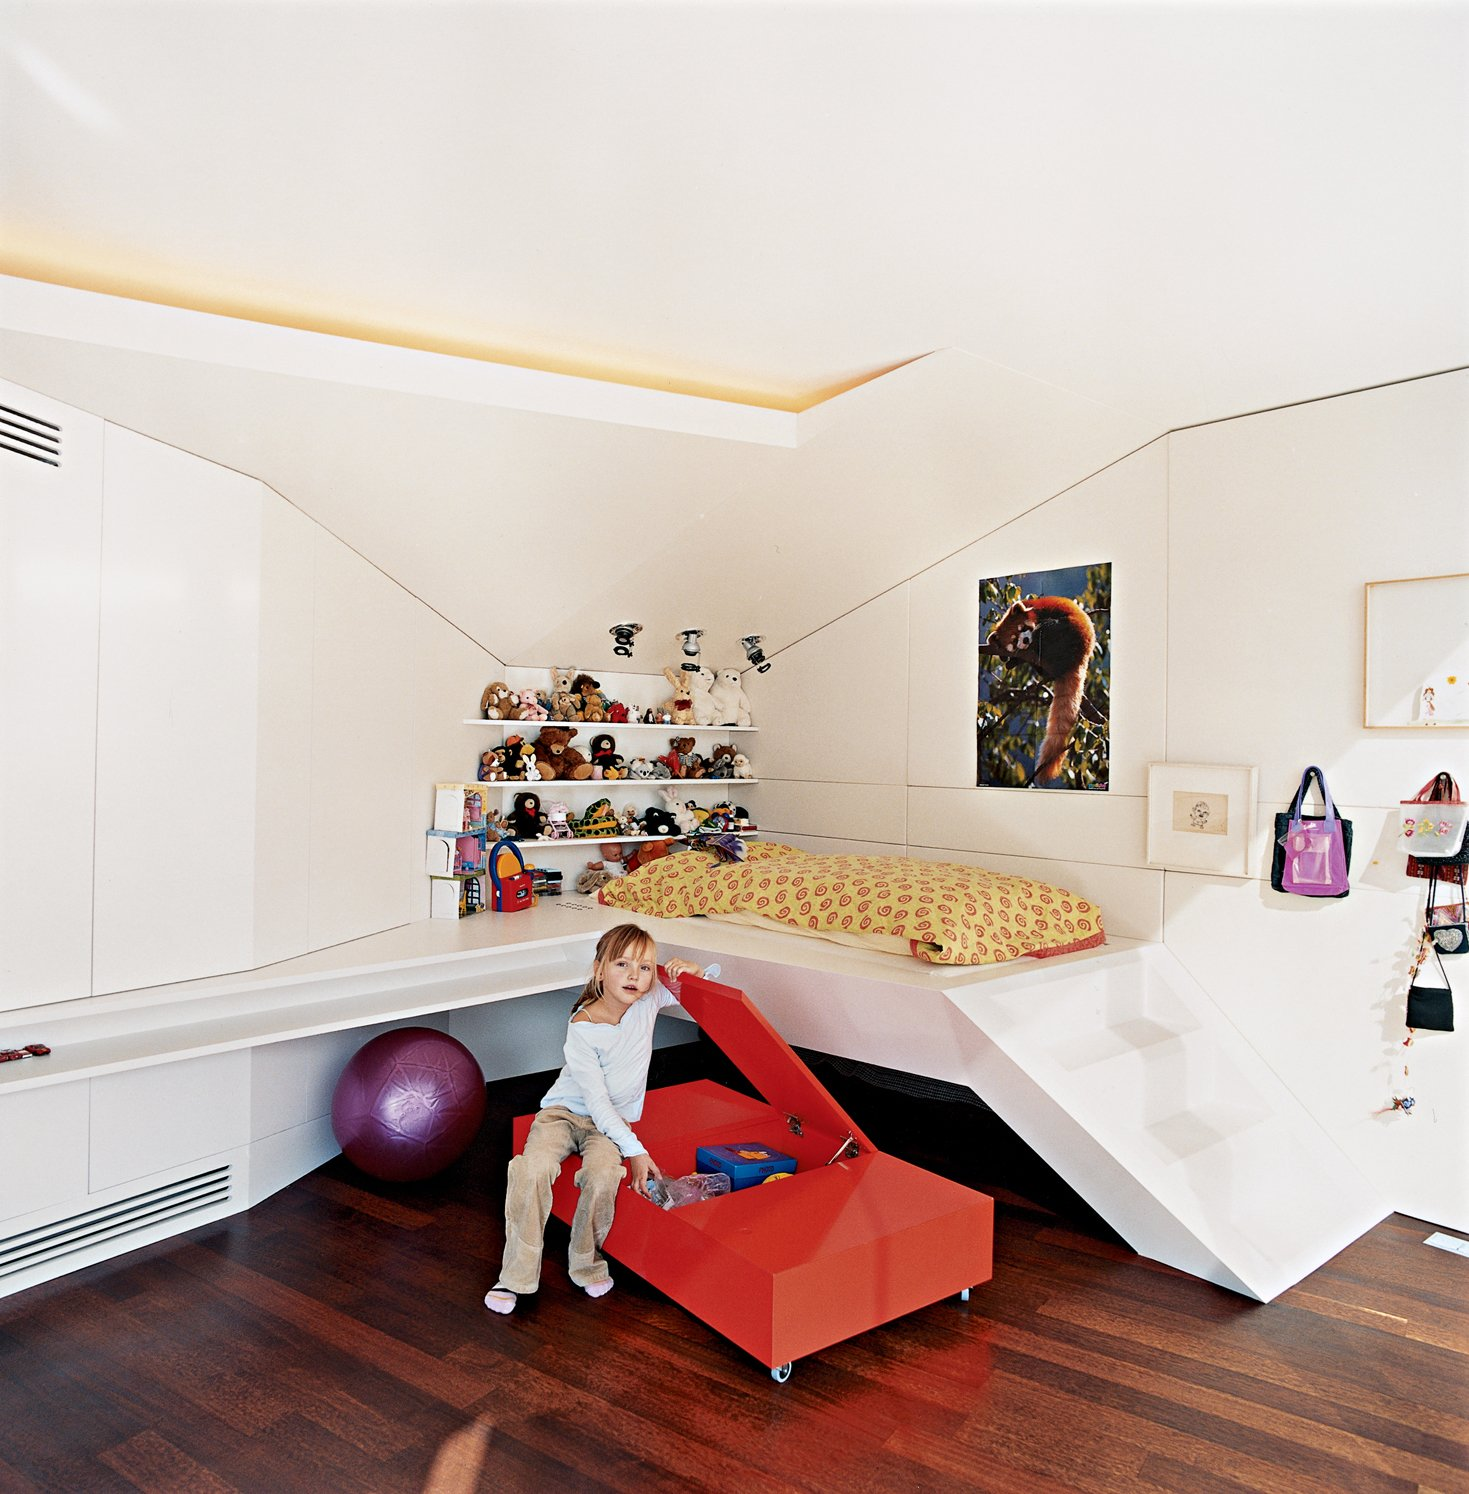 Nora, the architects' six-year-old daughter, hangs out next to her built-in bed. The Penthouse Has Landed - Photo 6 of 16